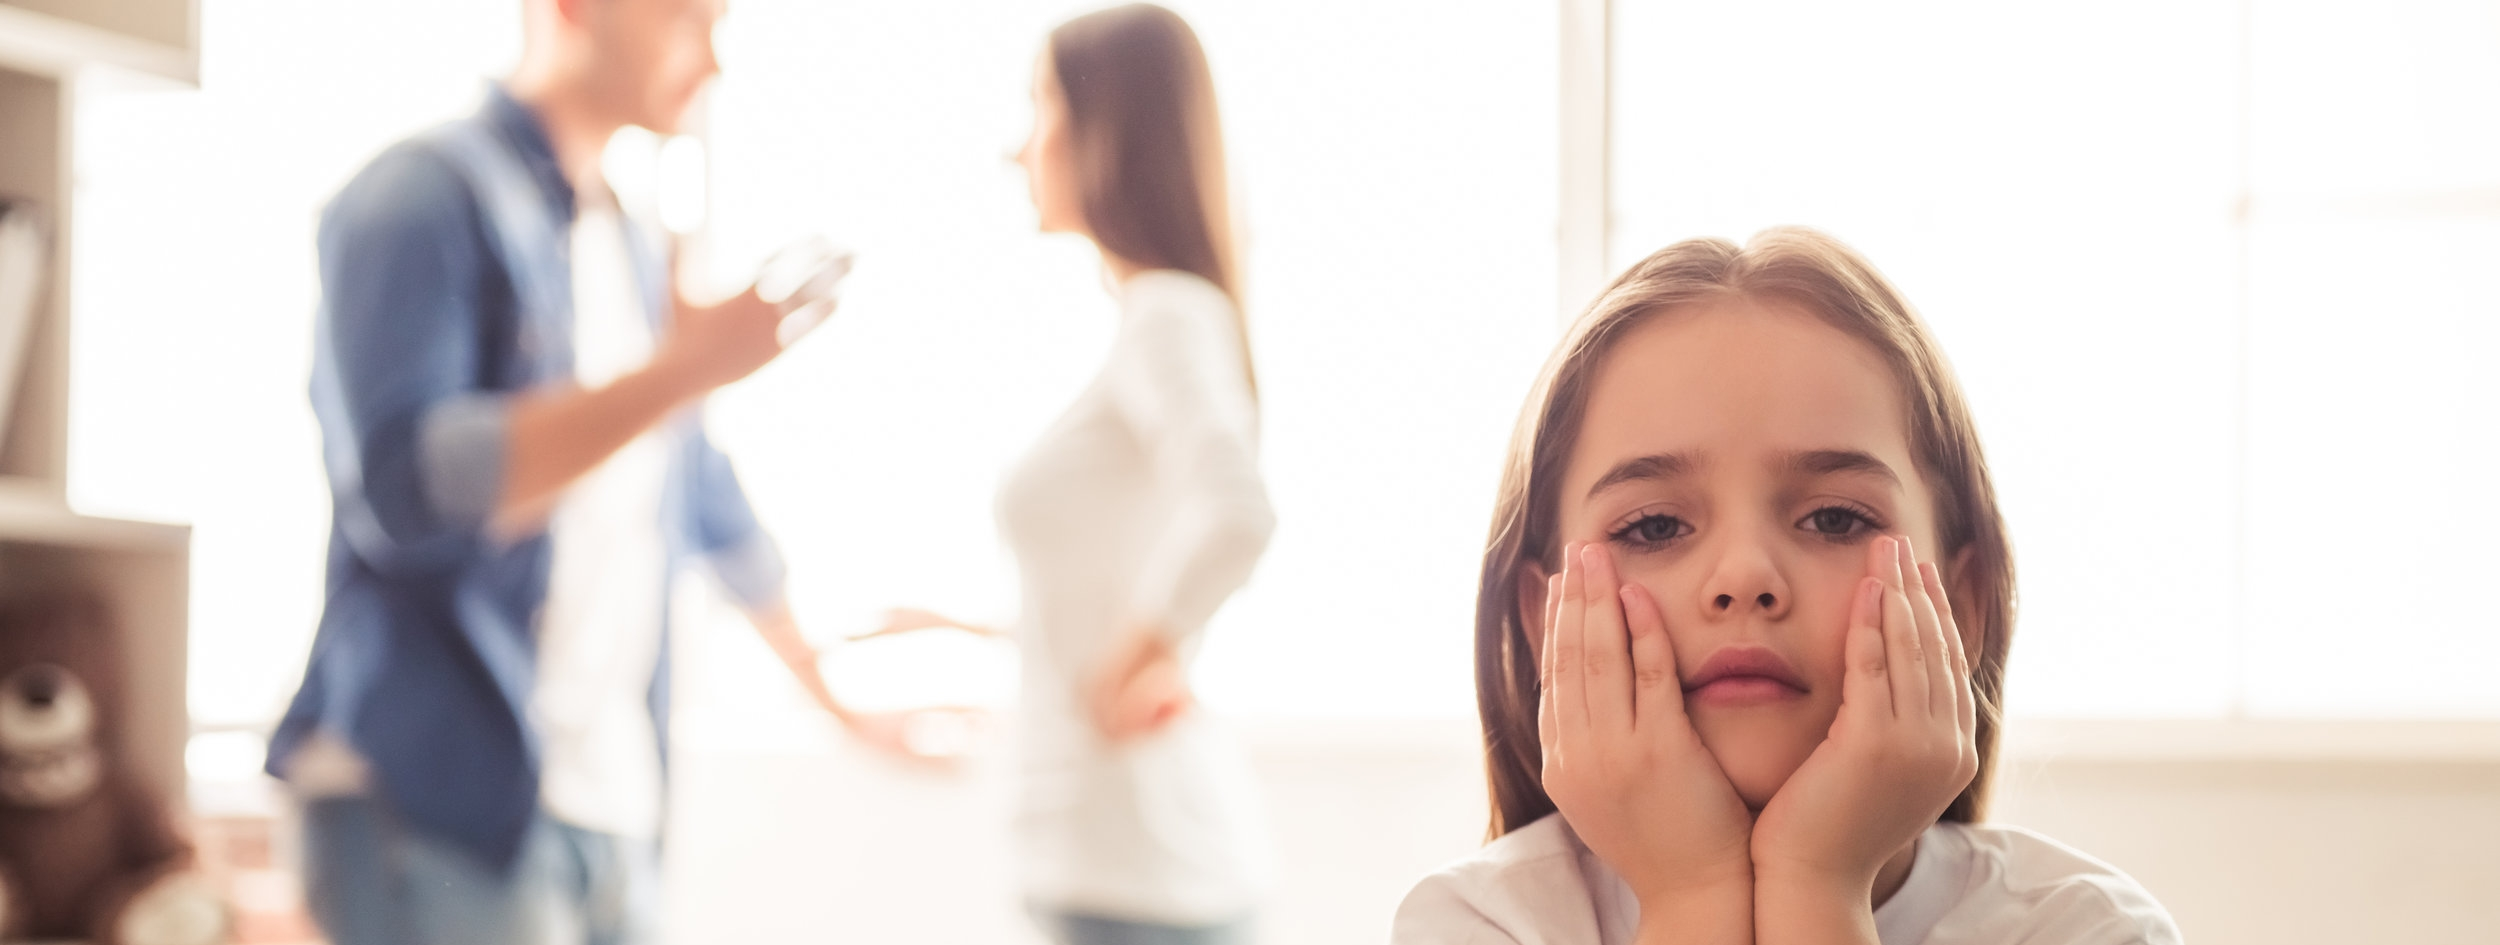 Child Custody Lawyer - Chicago Family Law.jpg